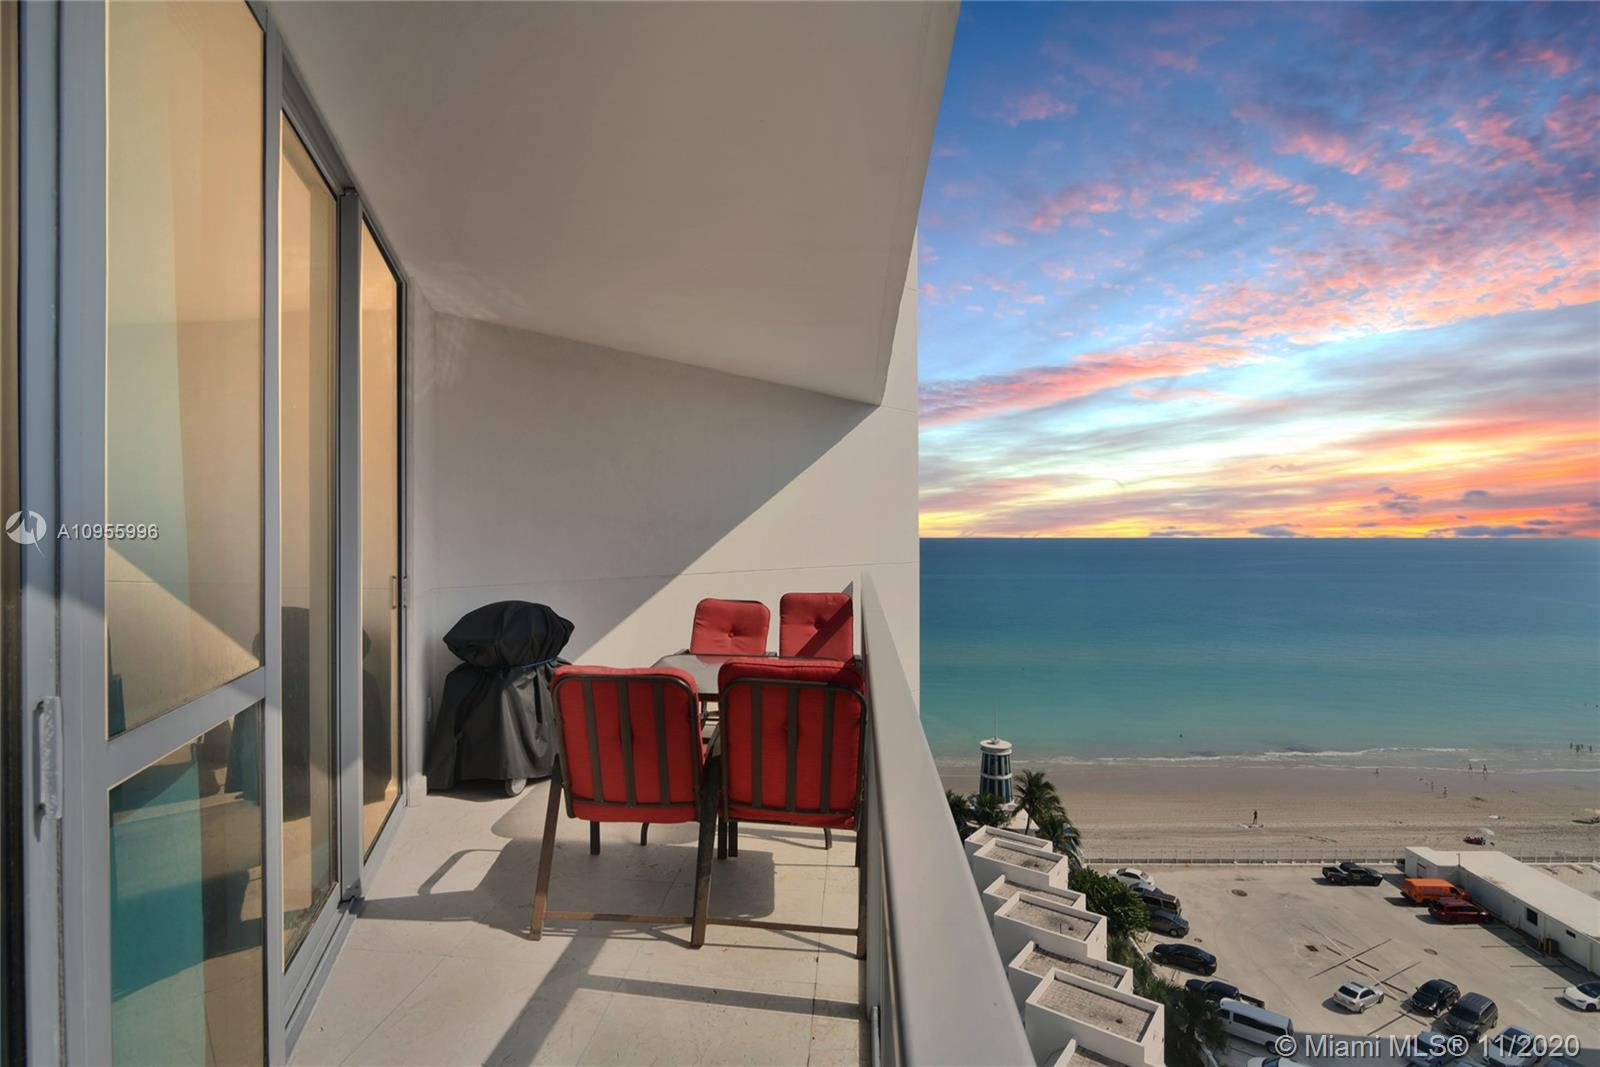 HOLLYWOOD GEM, OCEAN PALM IS A LUXURY OCEANFRONT, SPACIOUS 3B AND 3.5B. PRIVATE ELEVATOR, SPLIT FLOO